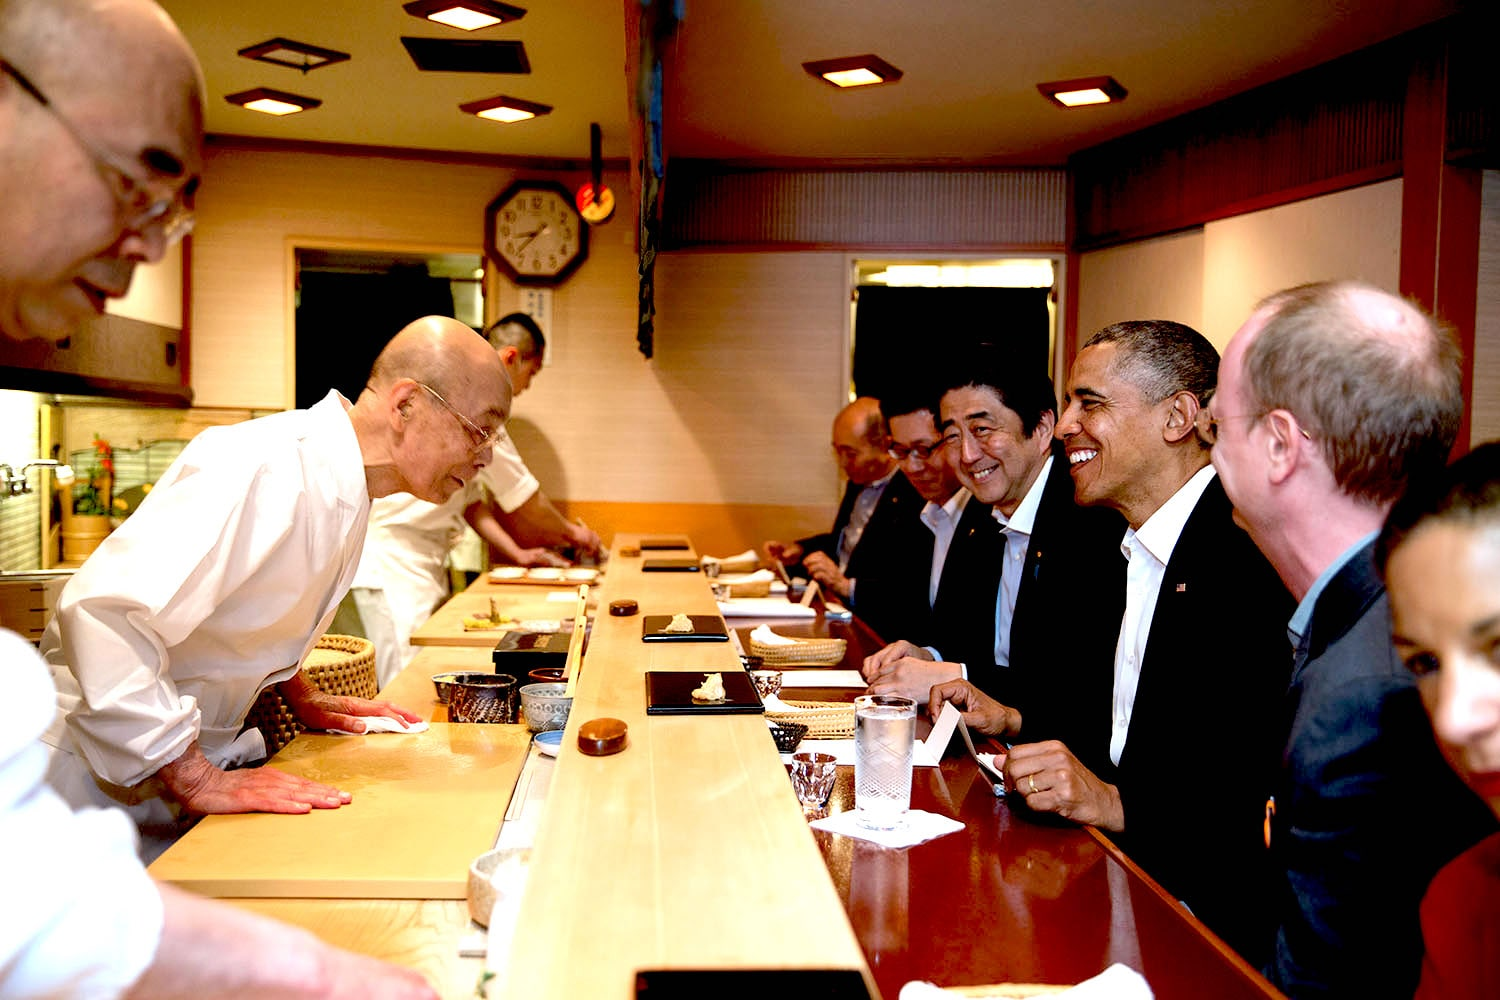 Jiro dreams of Sushi and Barack Obama must do in Japan